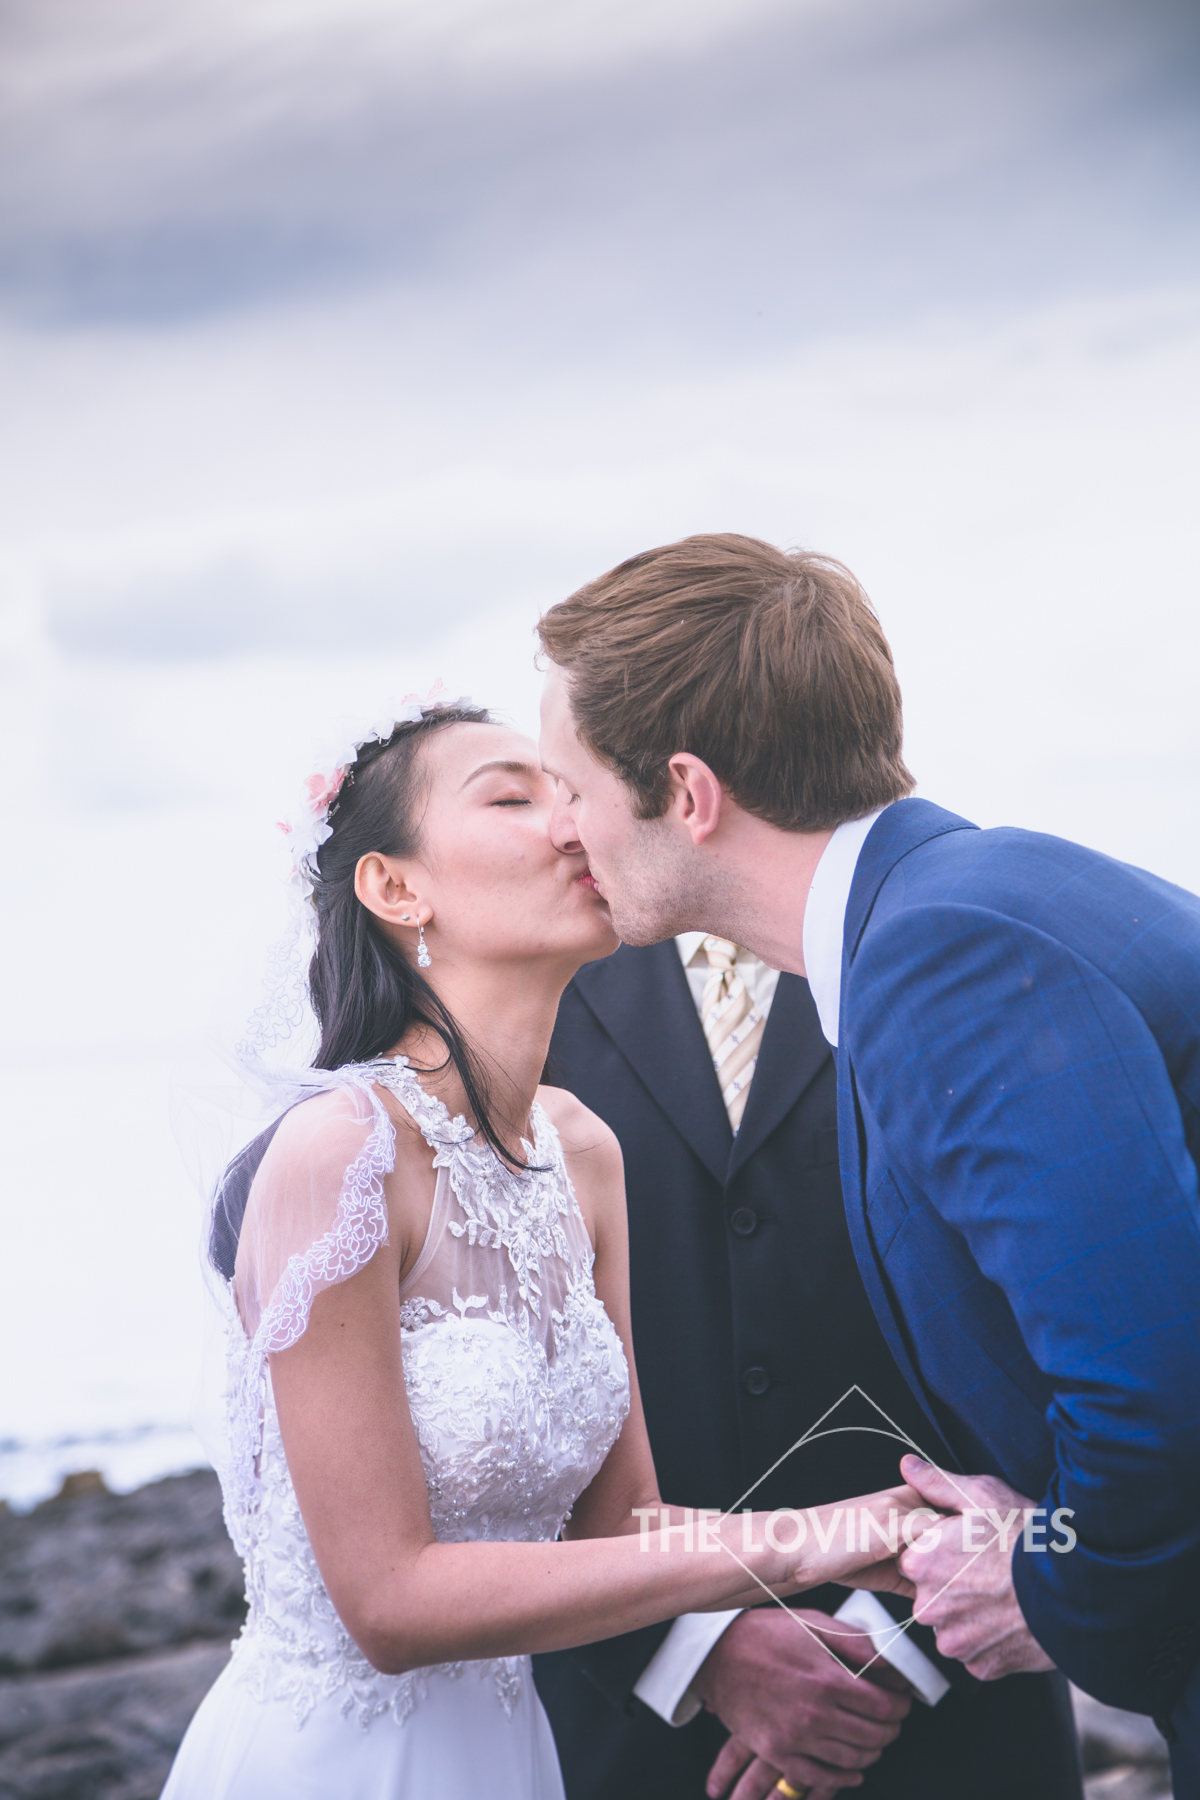 Bride and groom's first kiss at their intimate wedding ceremony at the lagoon near the Four Seasons Resort at Ko Olina